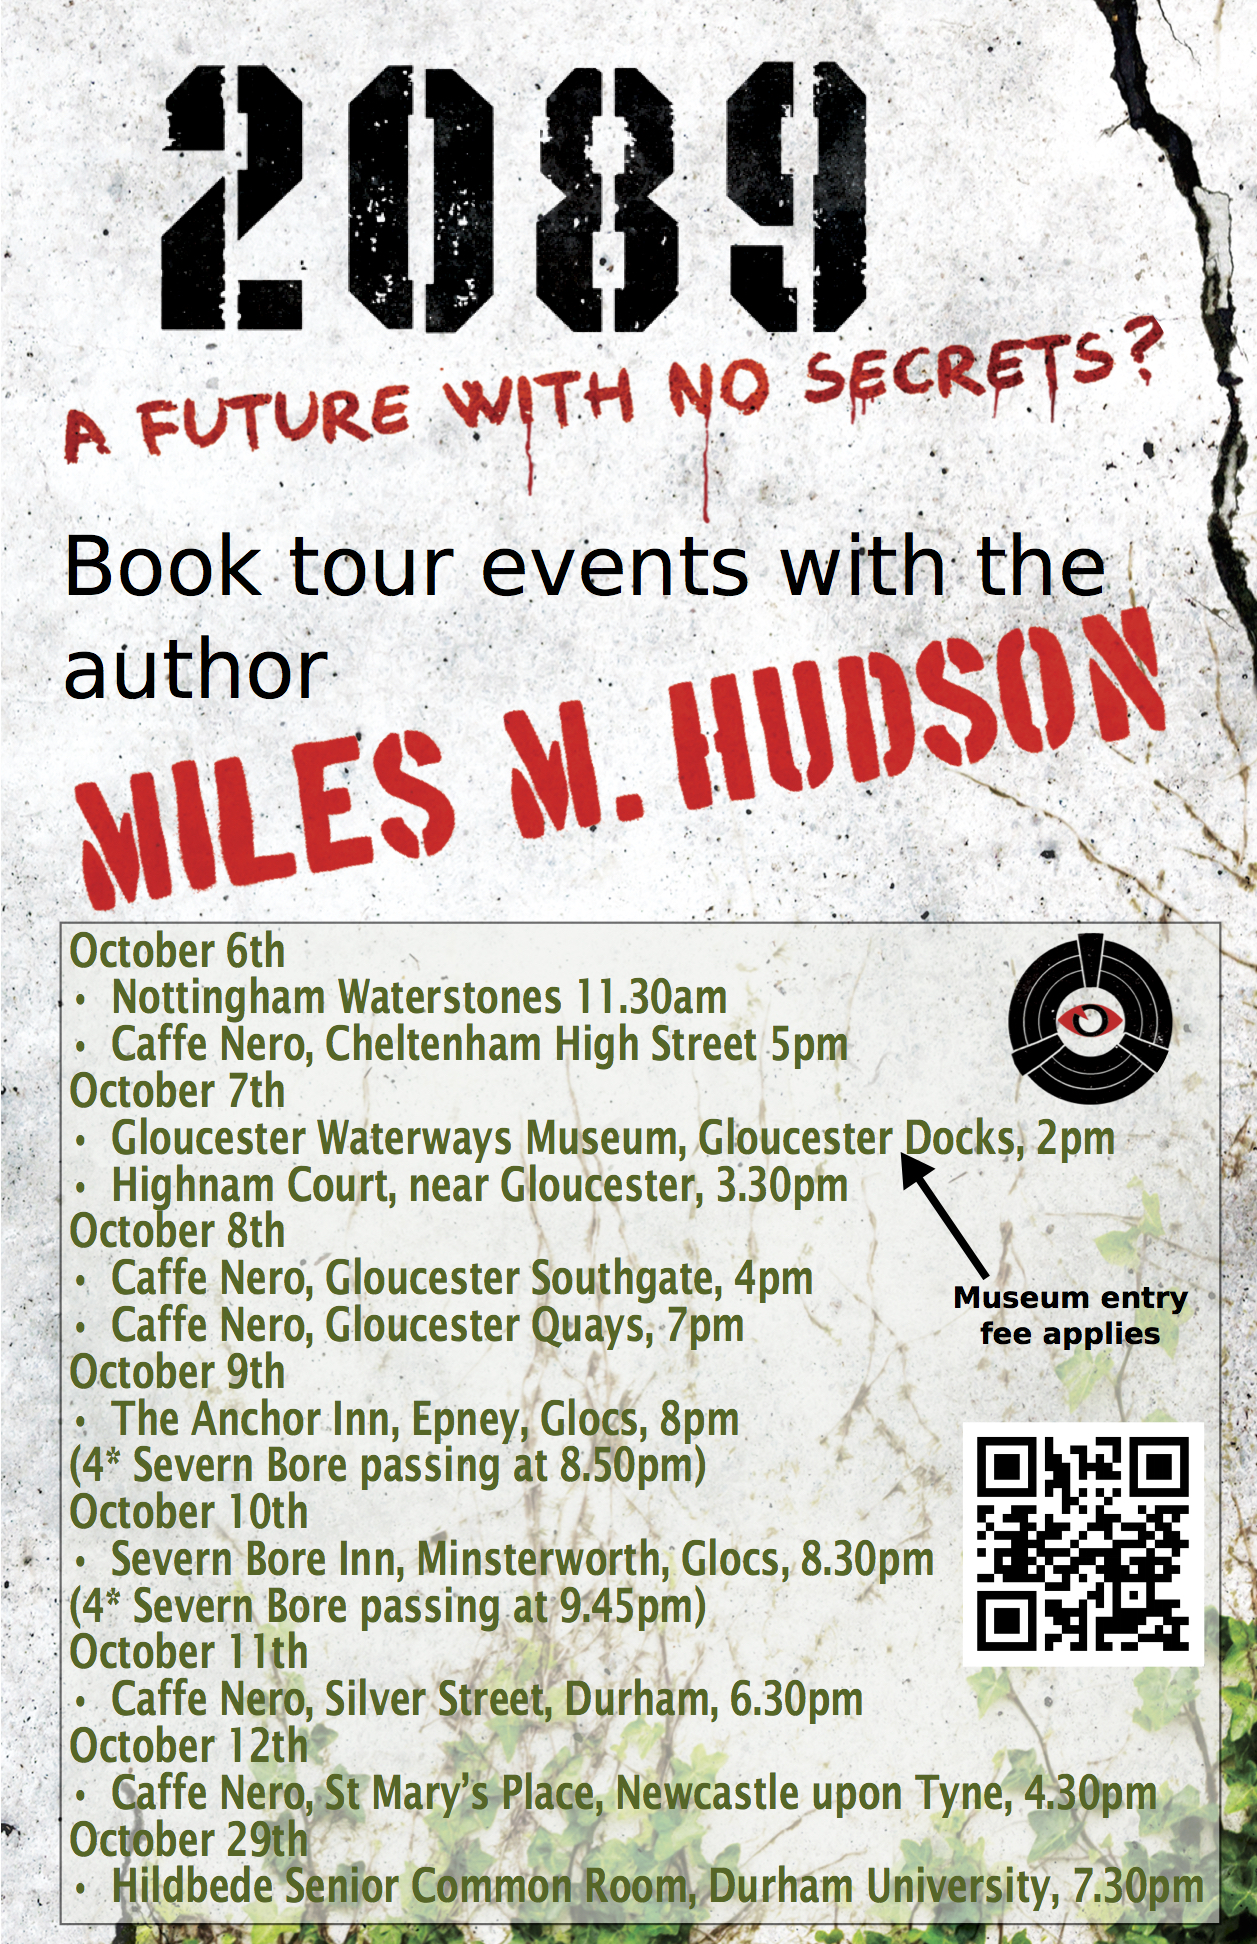 Poster showing list of events on Miles Hudson's book tour for 2089.